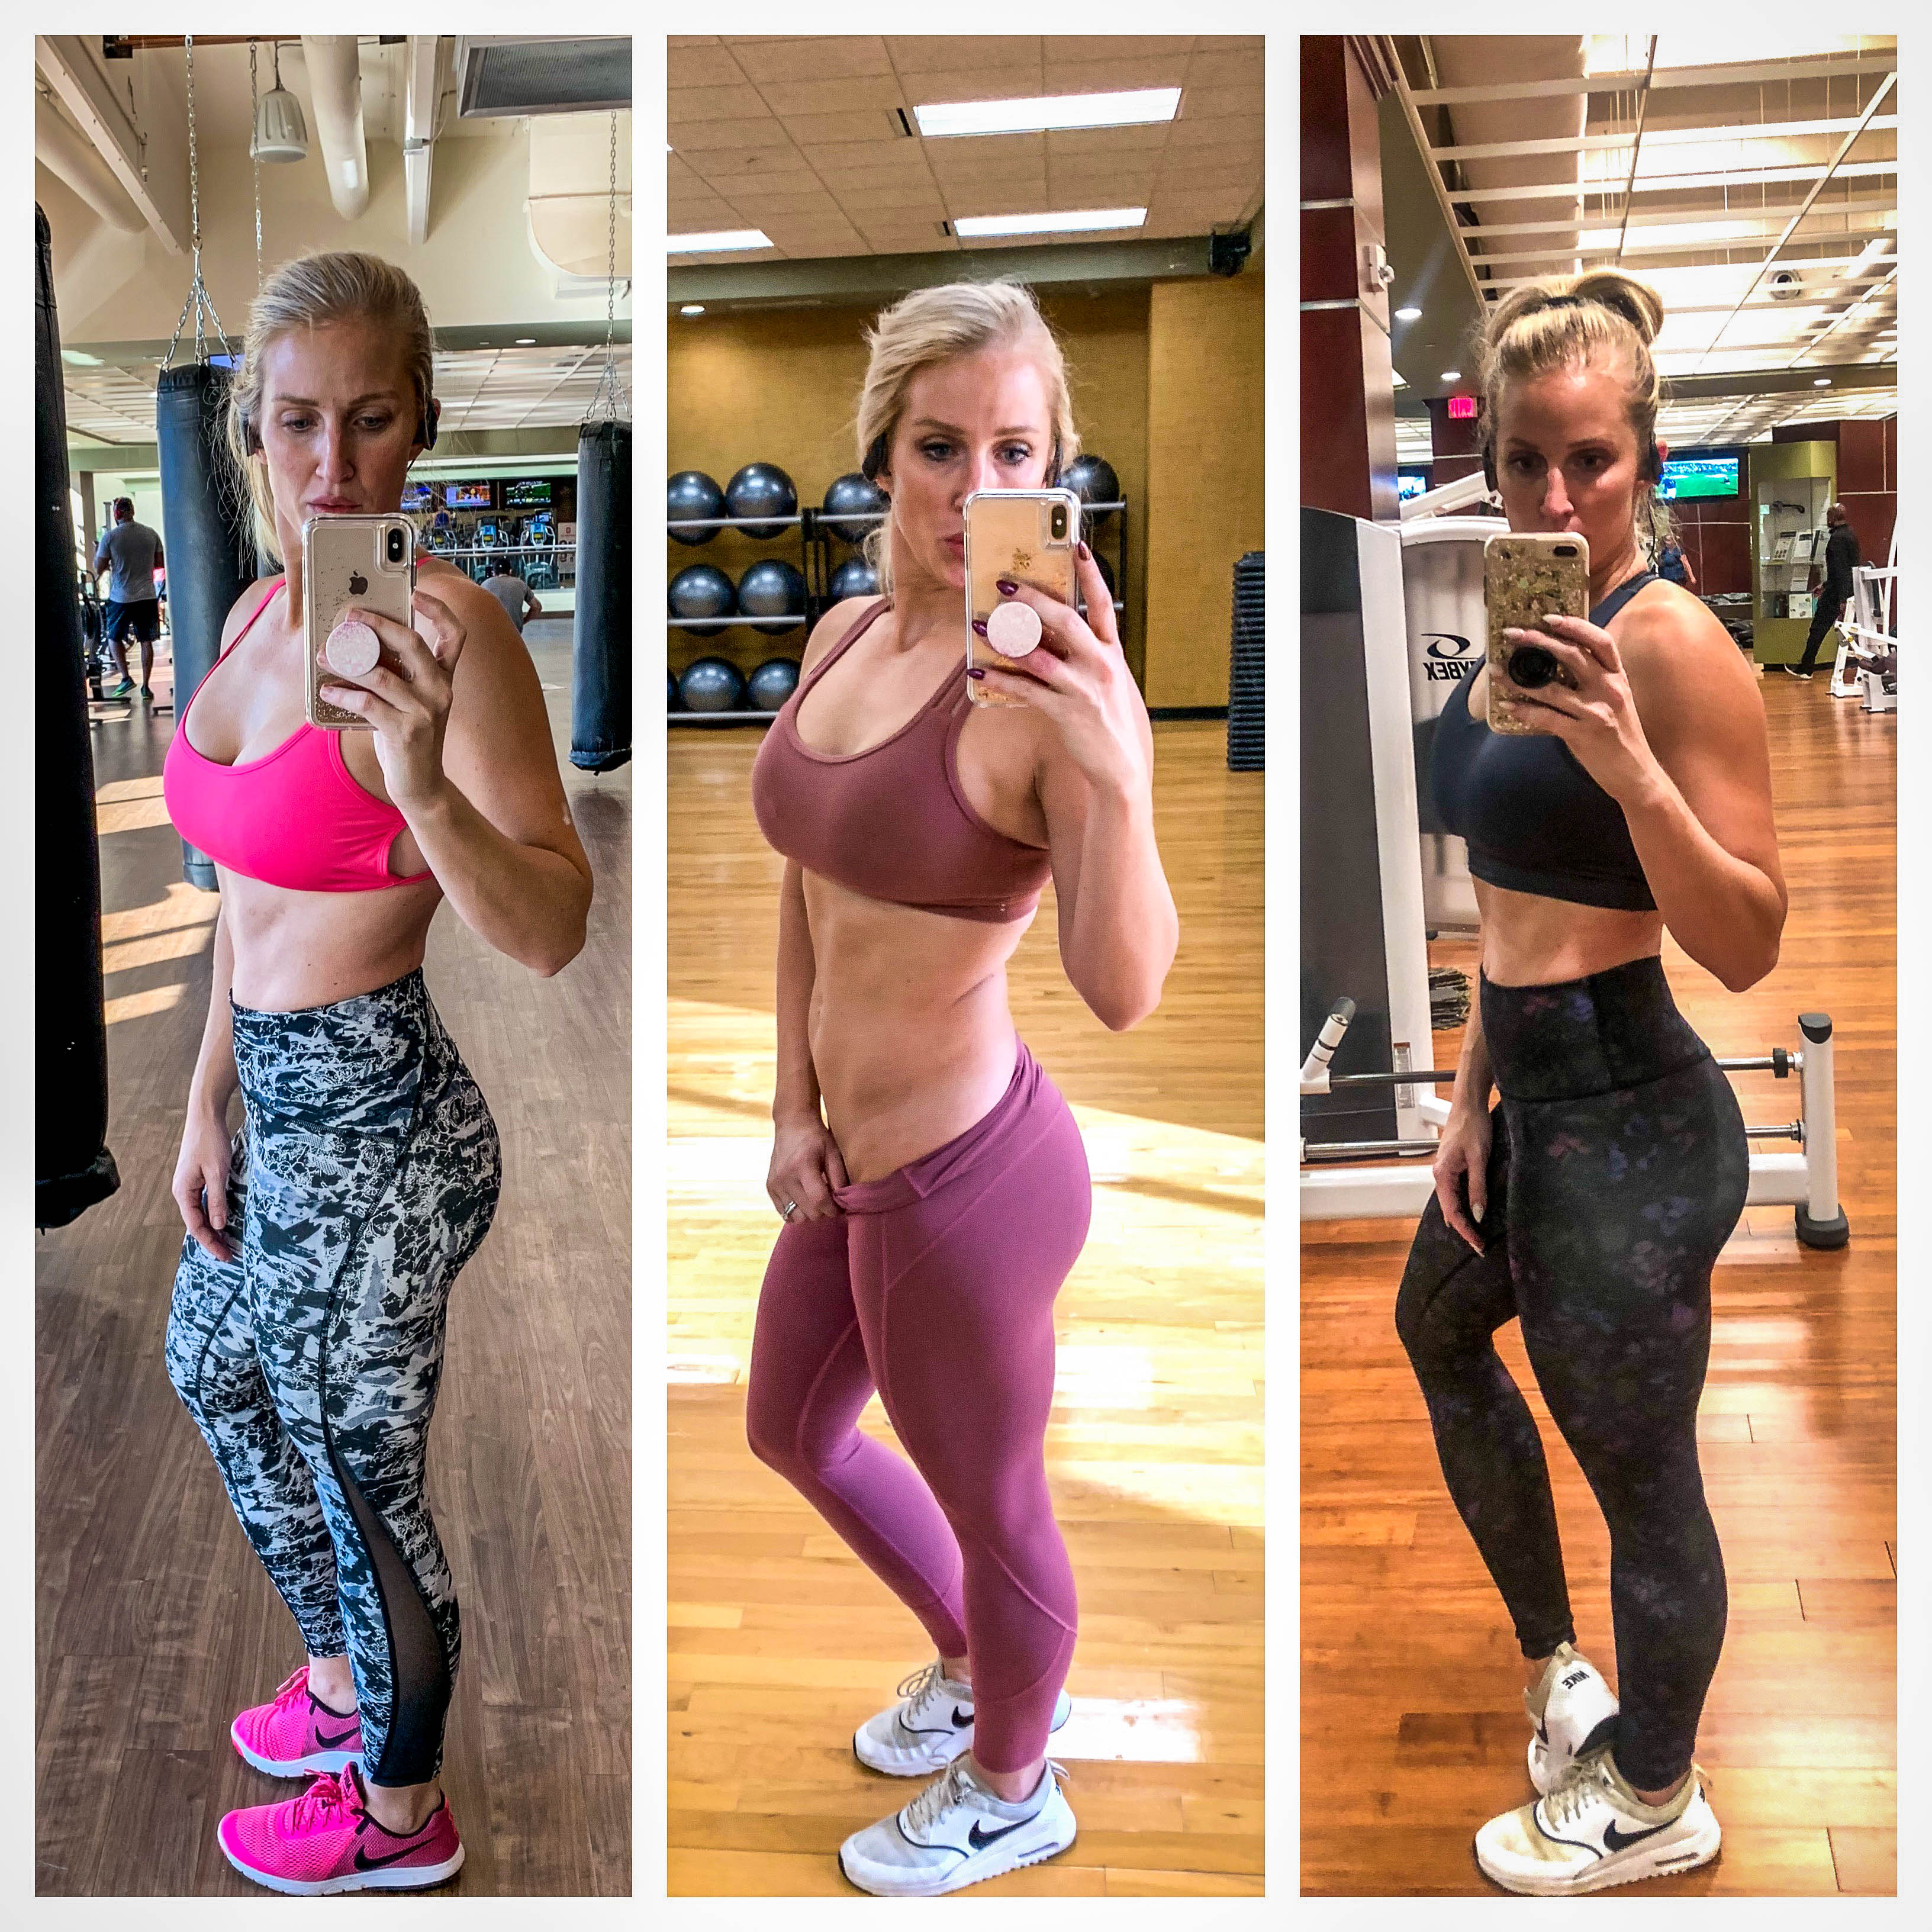 Does holiday weight gain have you feeling down? Popular Atlanta Blogger Happily Hughes is sharing her top tips to losing that holiday weight gain and getting in shape this New Year. See them here!